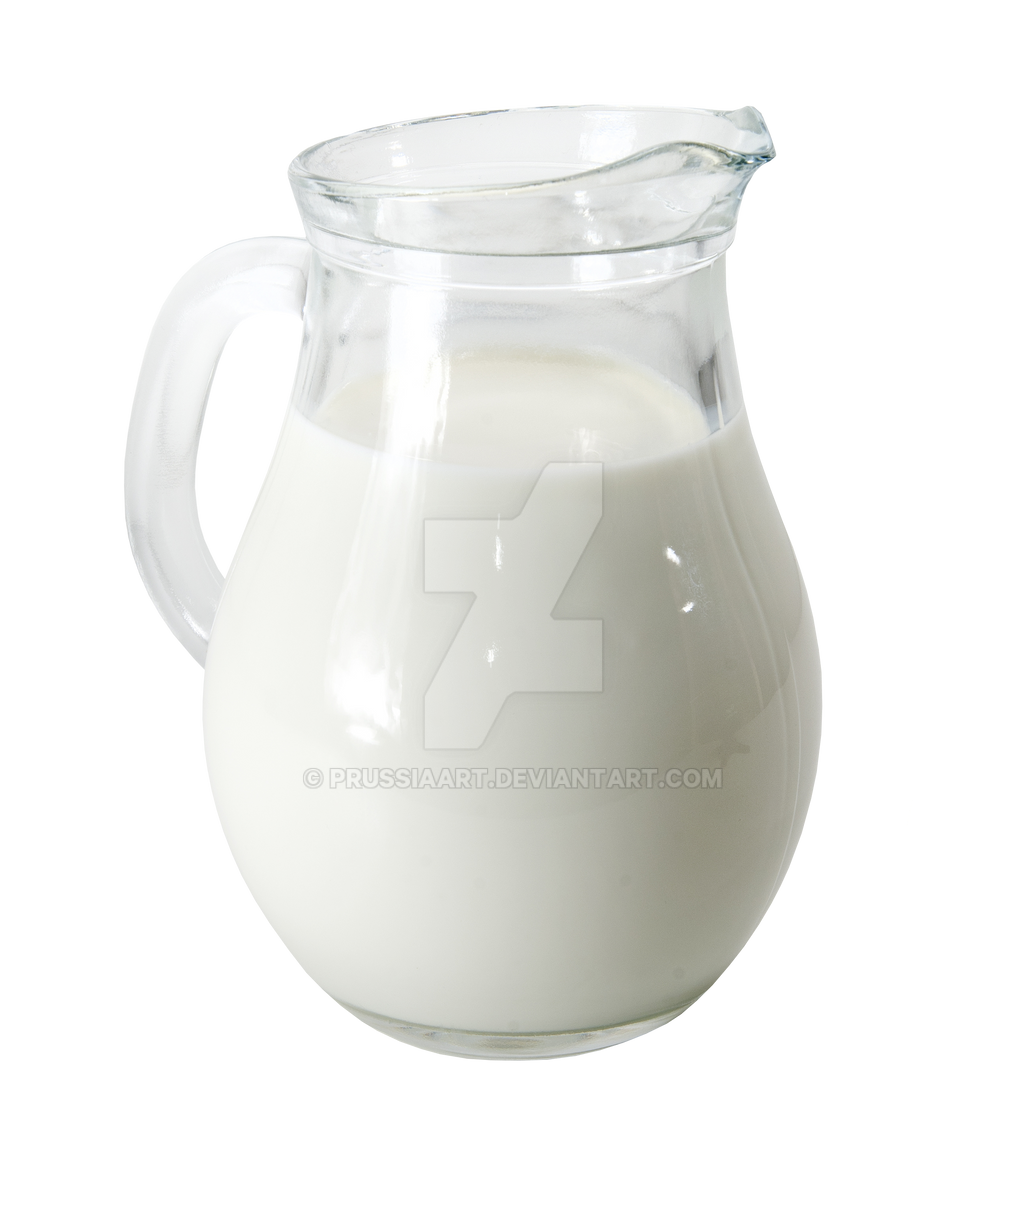 Transparent jug with milk. by PRUSSIAART on DeviantArt